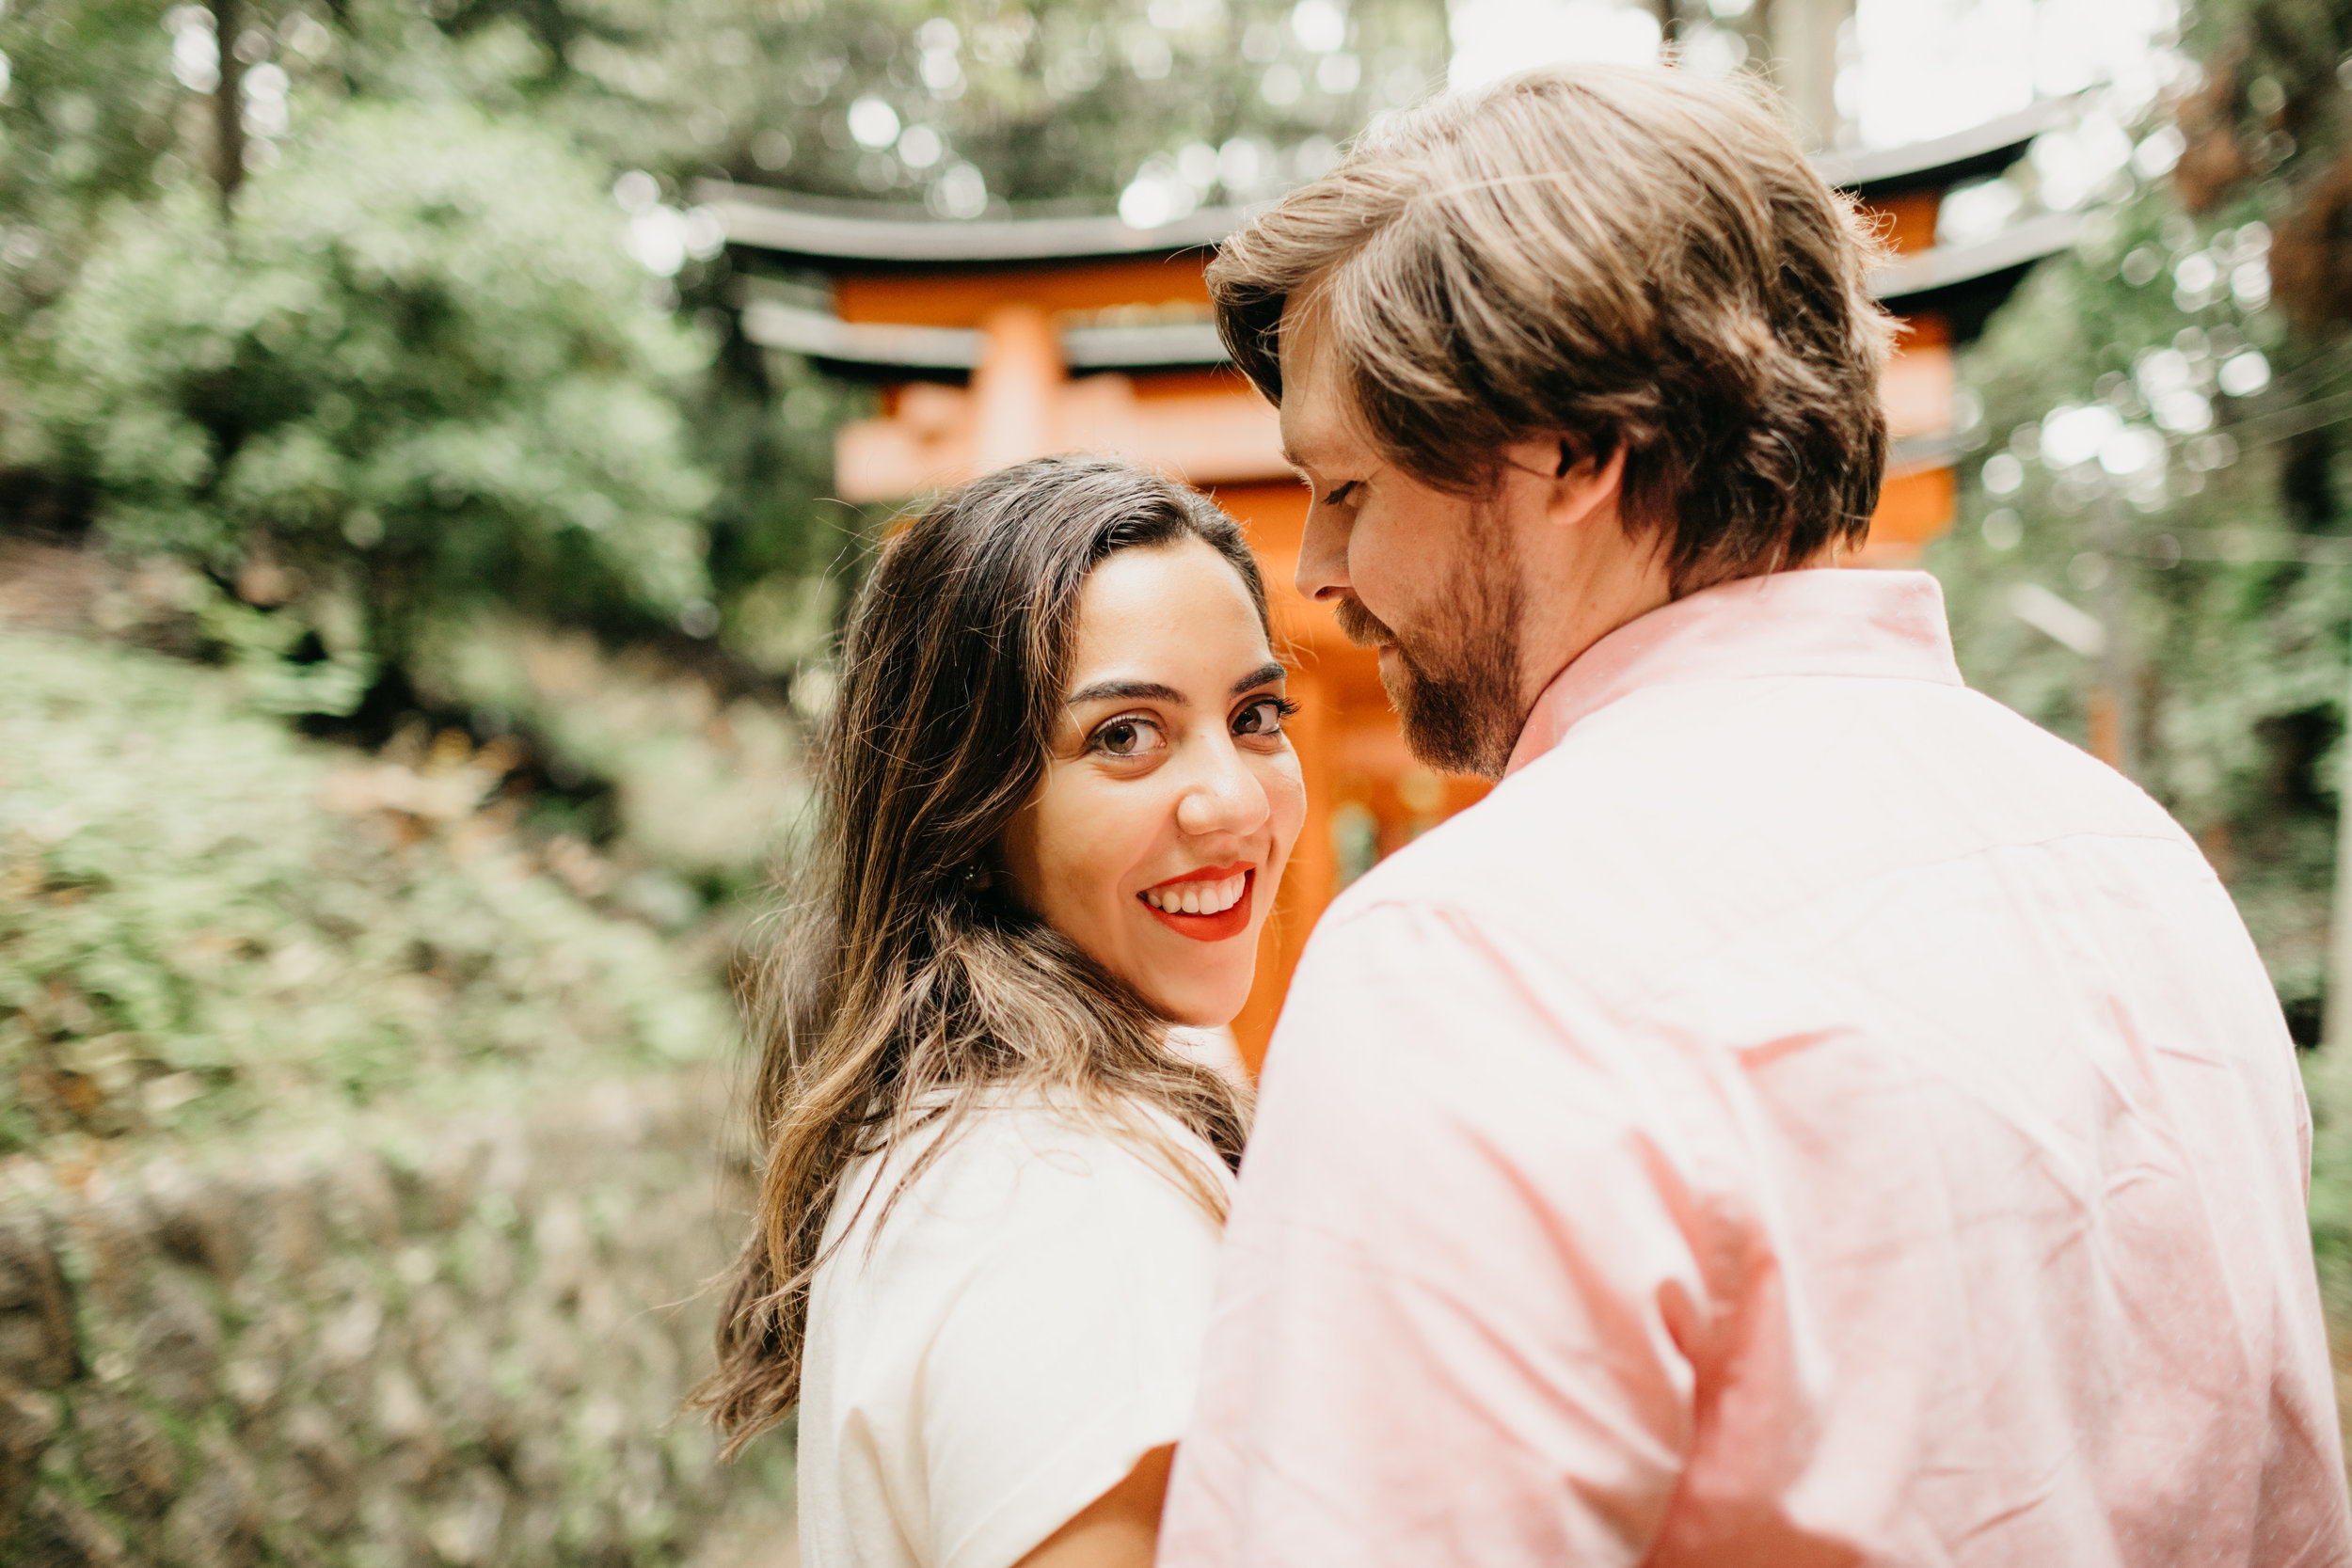 fushimi_inari_shrine_kyoto_couples_session_pictures_by_samantha_look-9.jpg